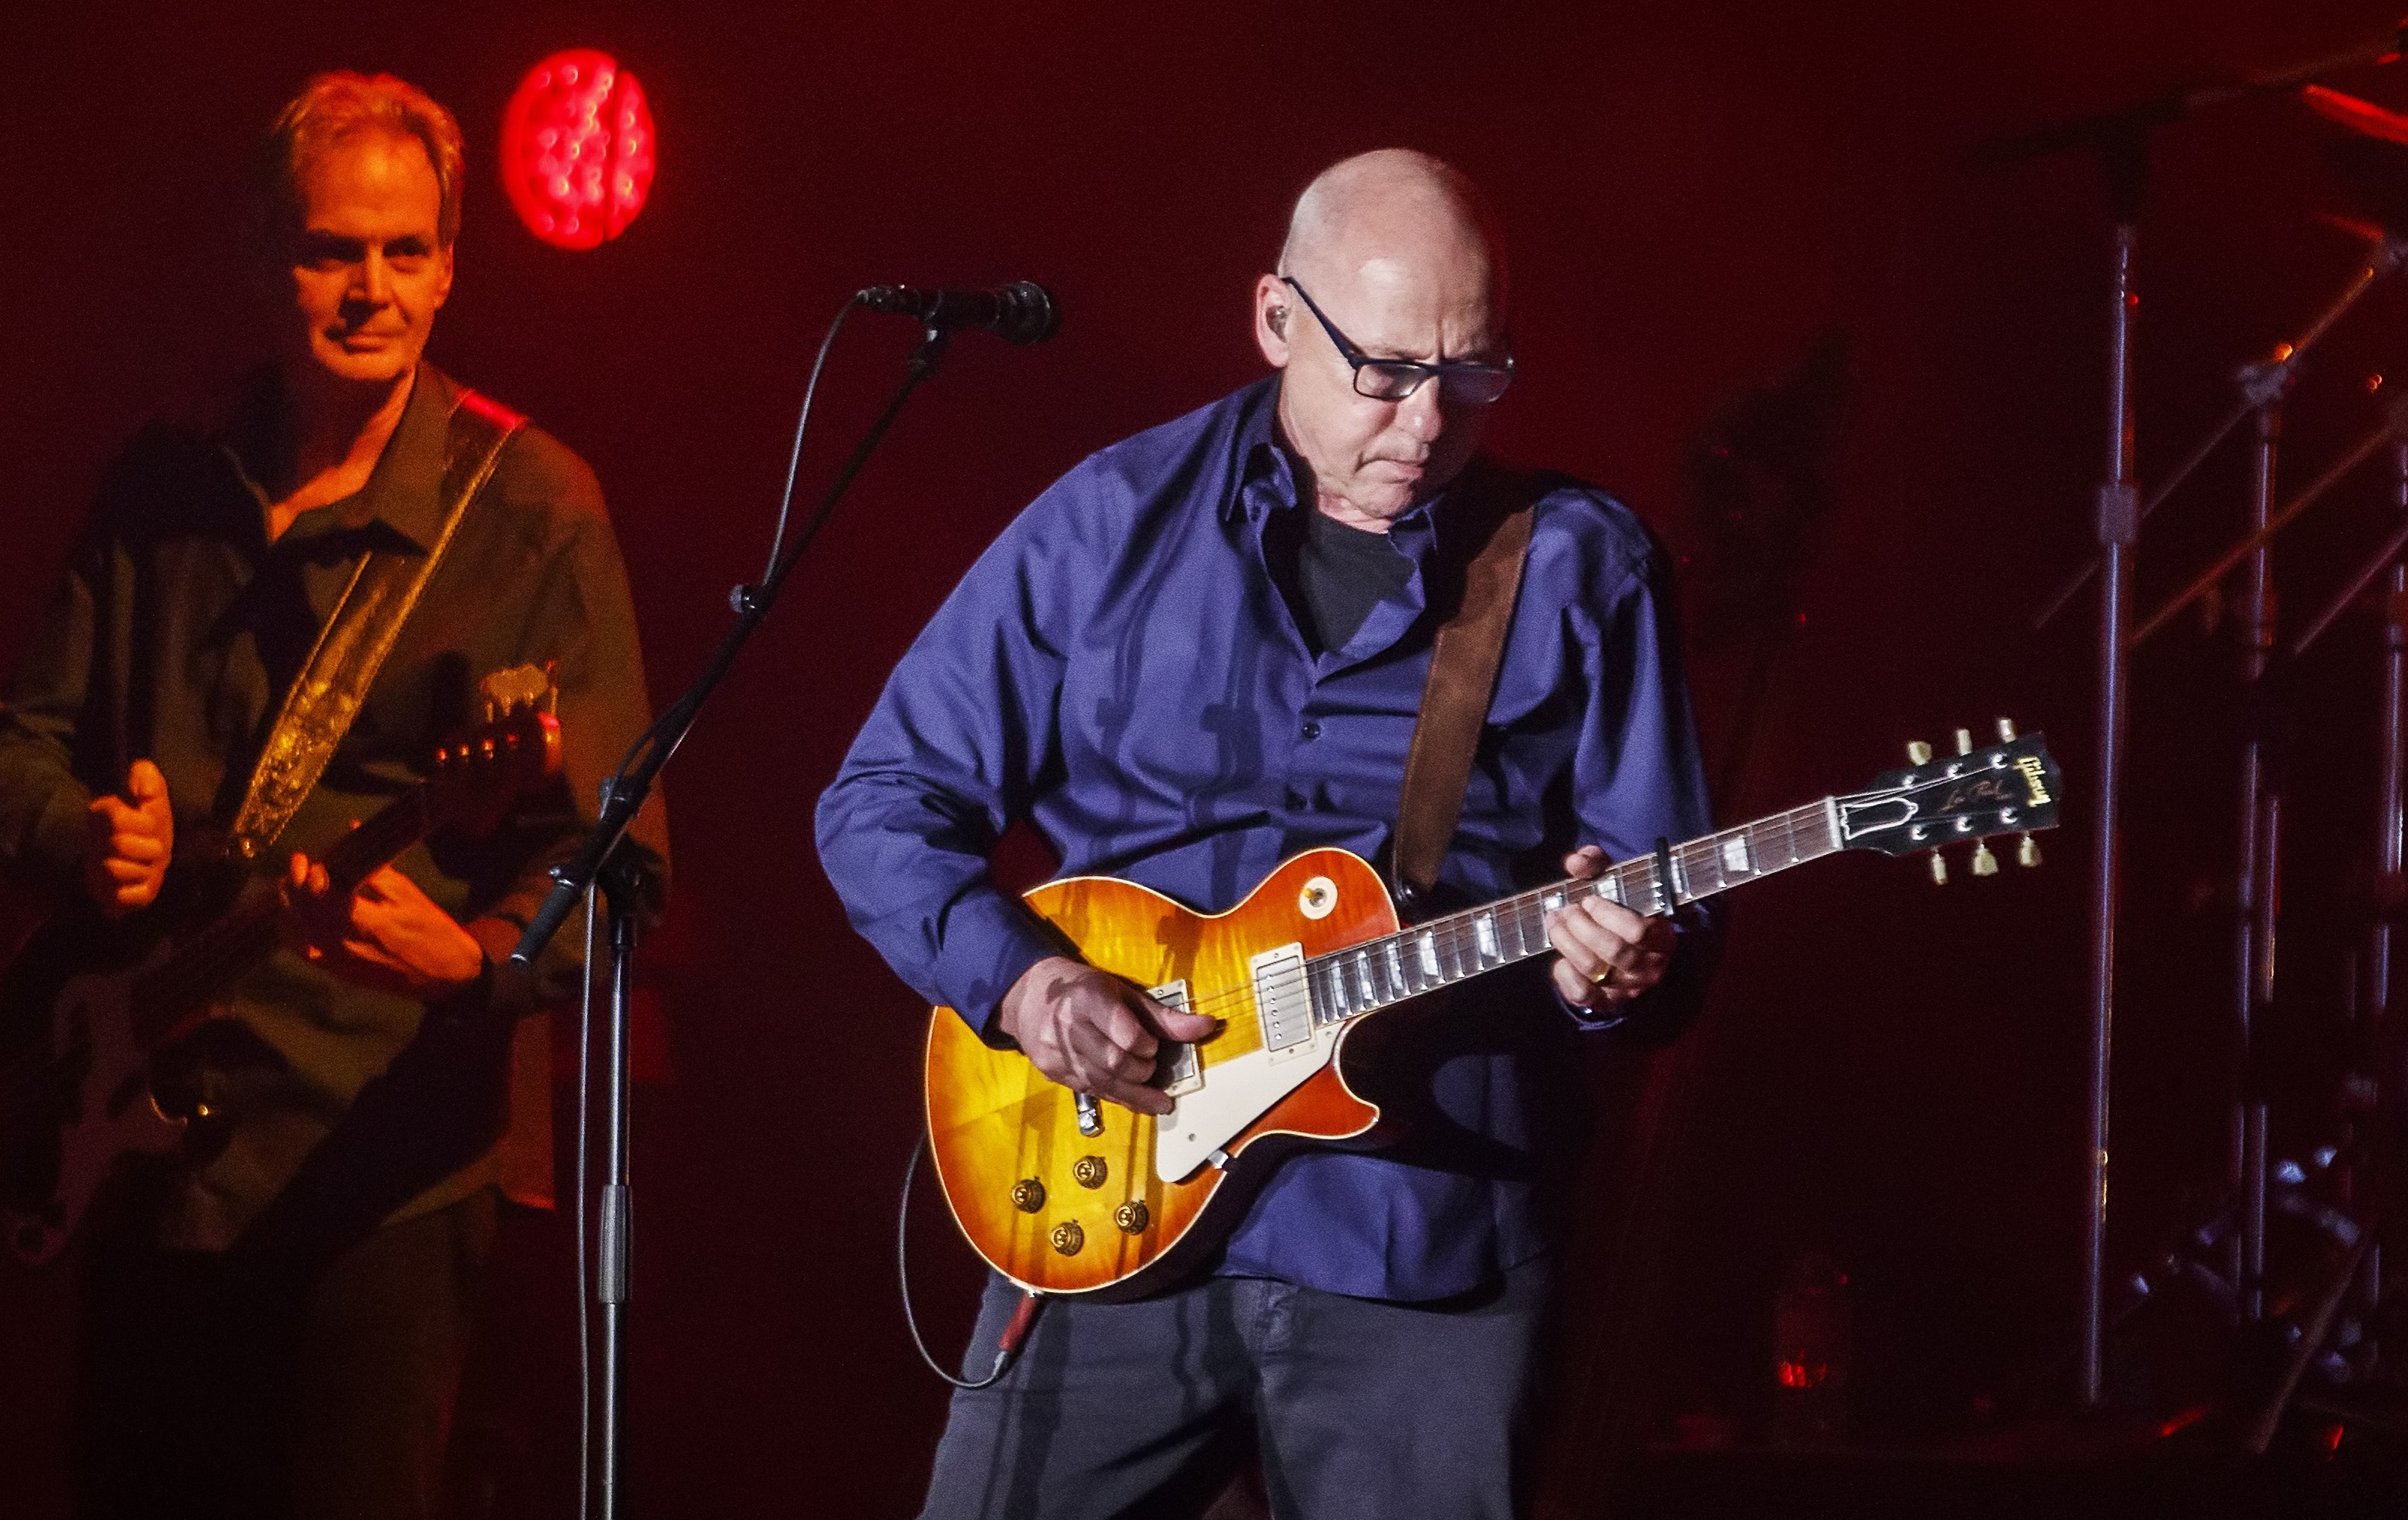 Mark Knopfler in action - hier live in Barcelona